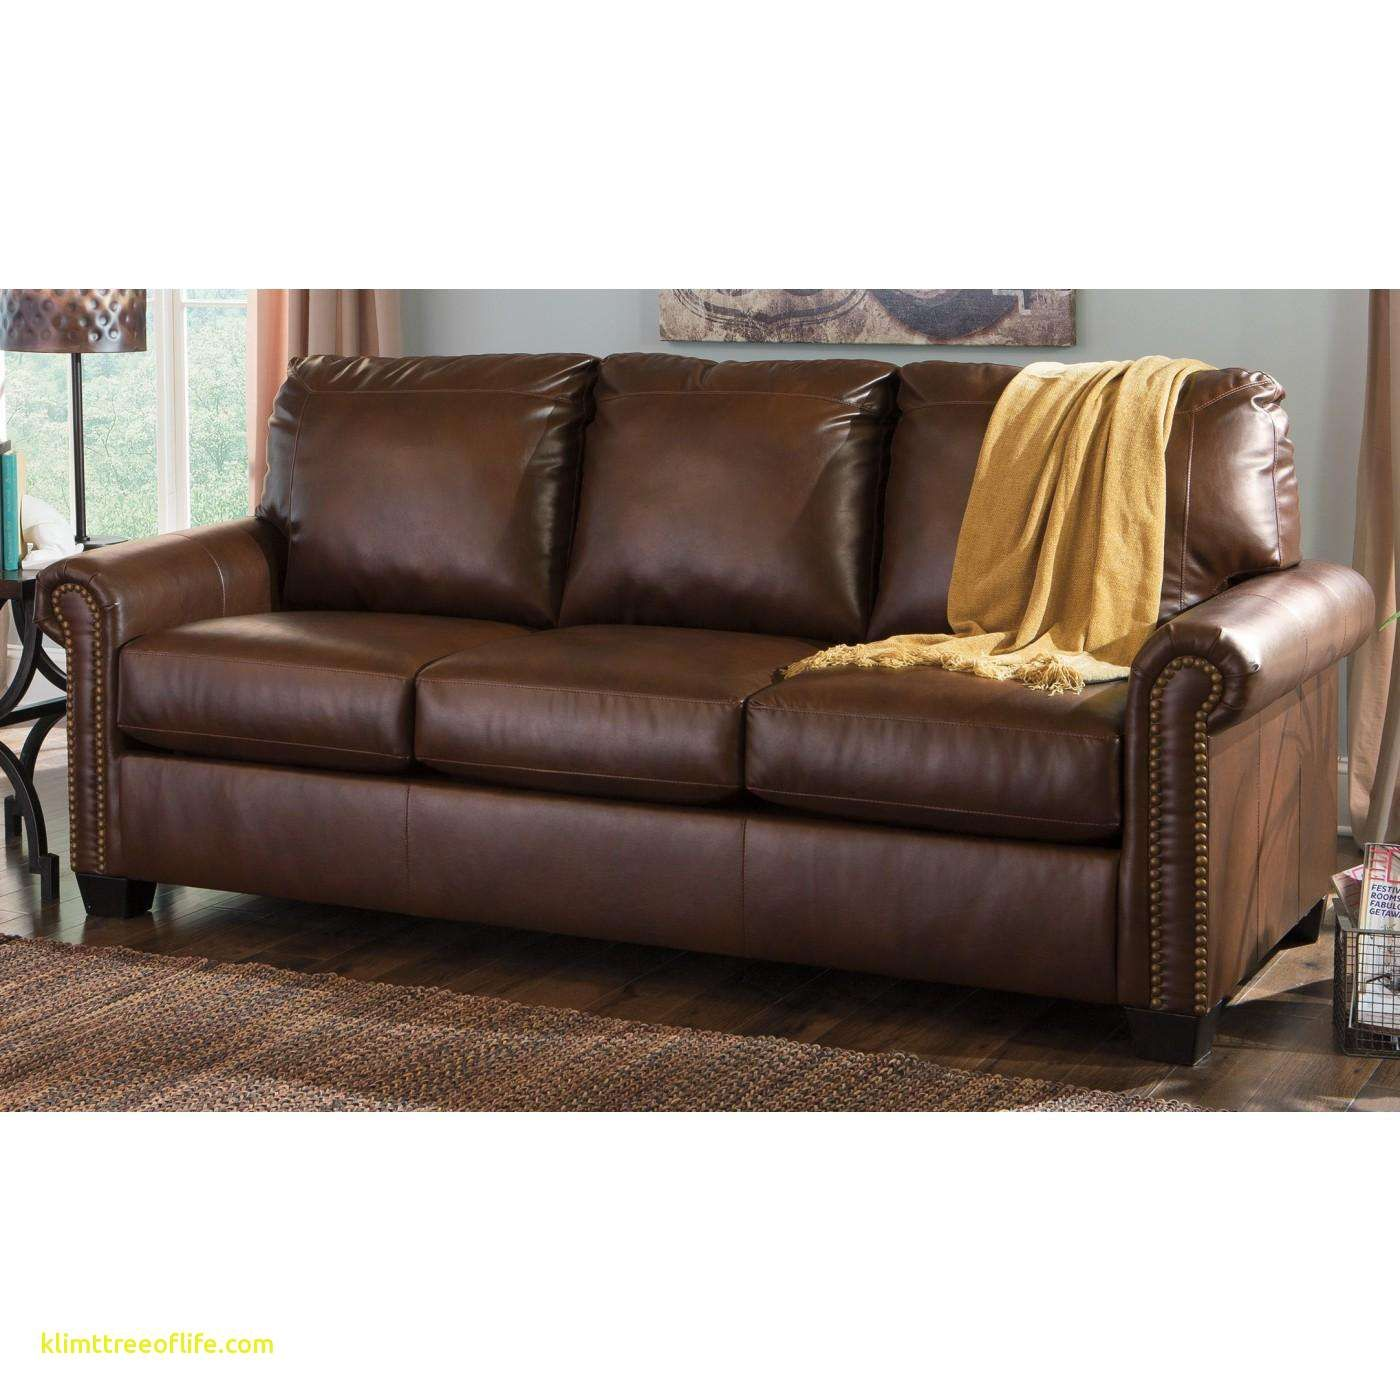 Lovely Leather Trend Sofa Delightful To Help My Website With